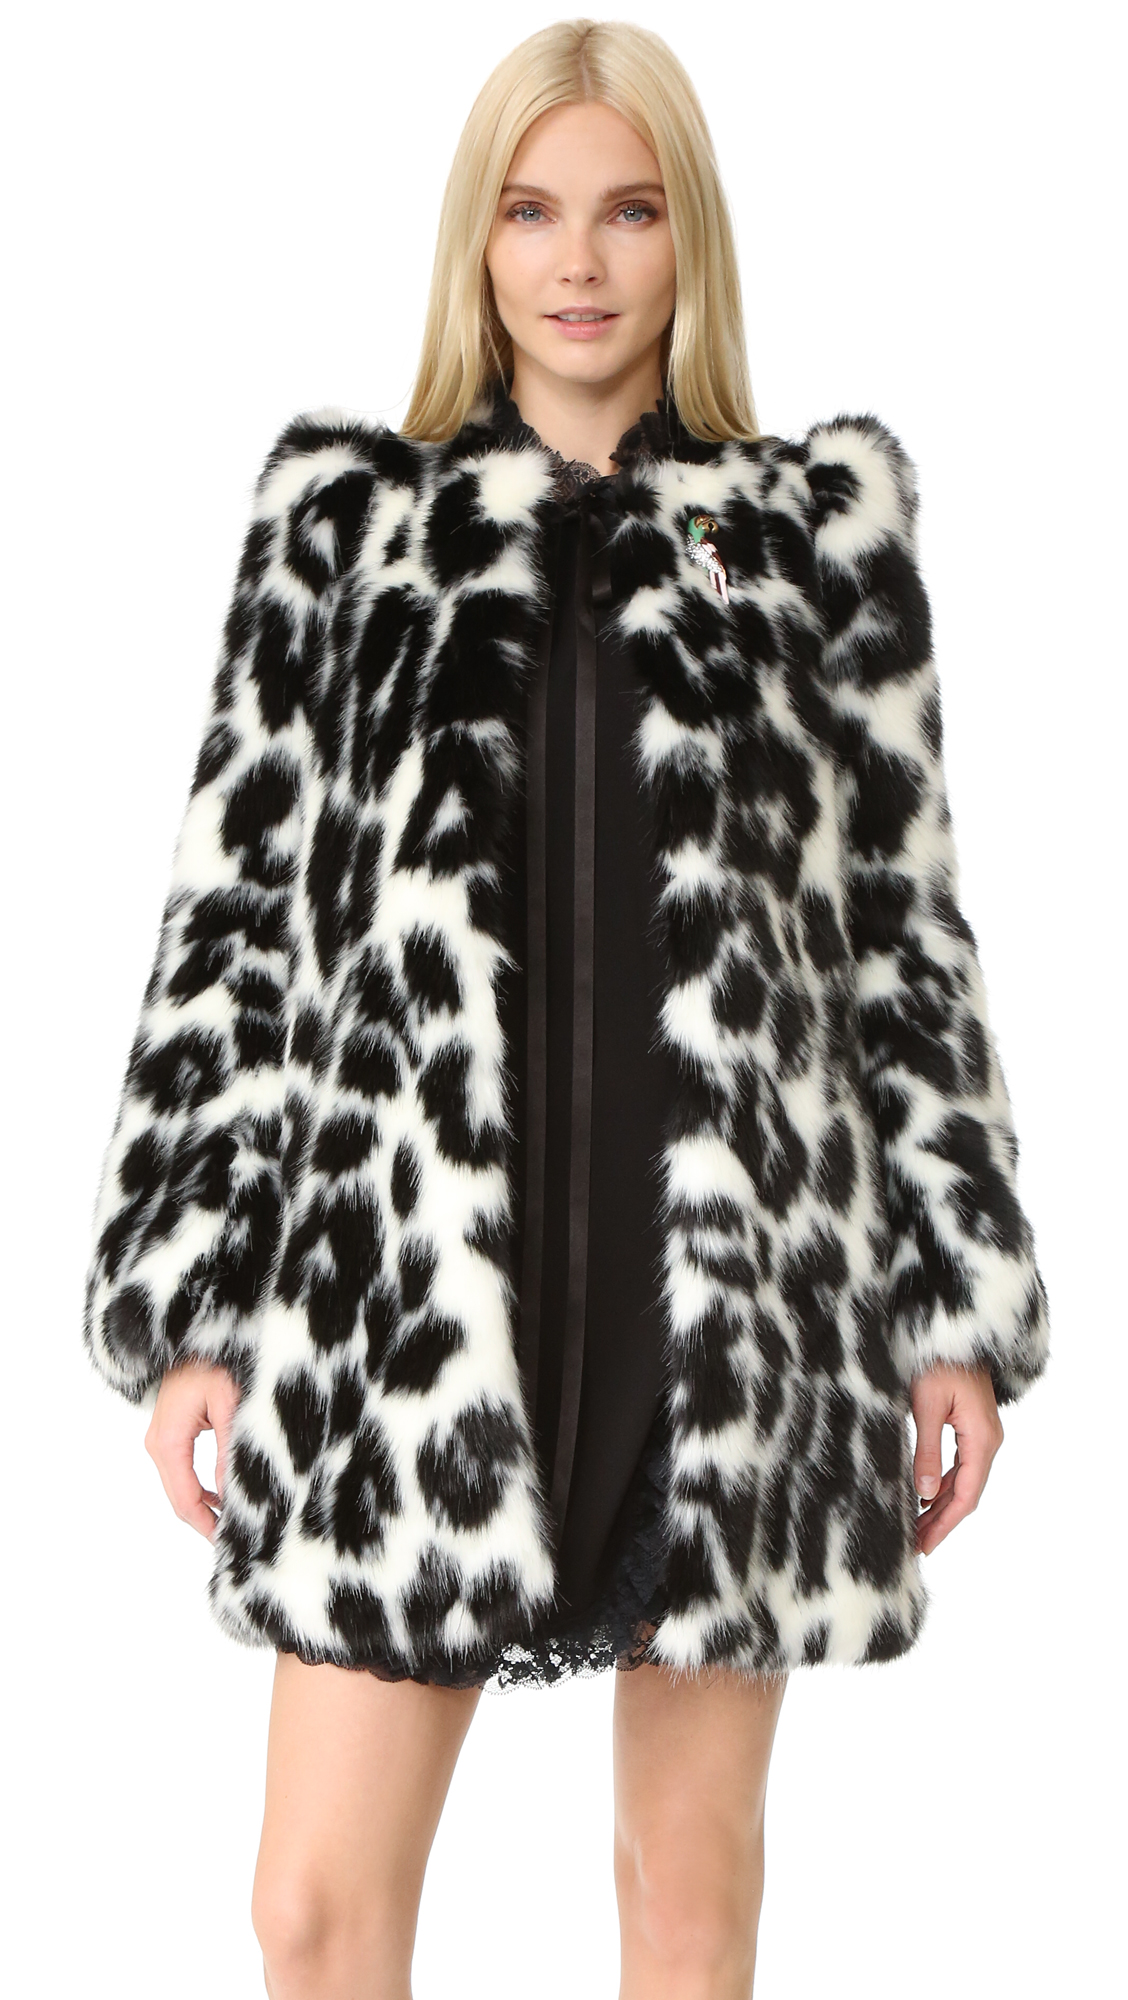 This Marc Jacobs coat makes a daring statement in spotted faux fur. A parrot shaped brooch adds a playful, vintage inspired detail. Hook and eye closures and on seam pockets. Long sleeves. Lined. Fabric: Faux fur.